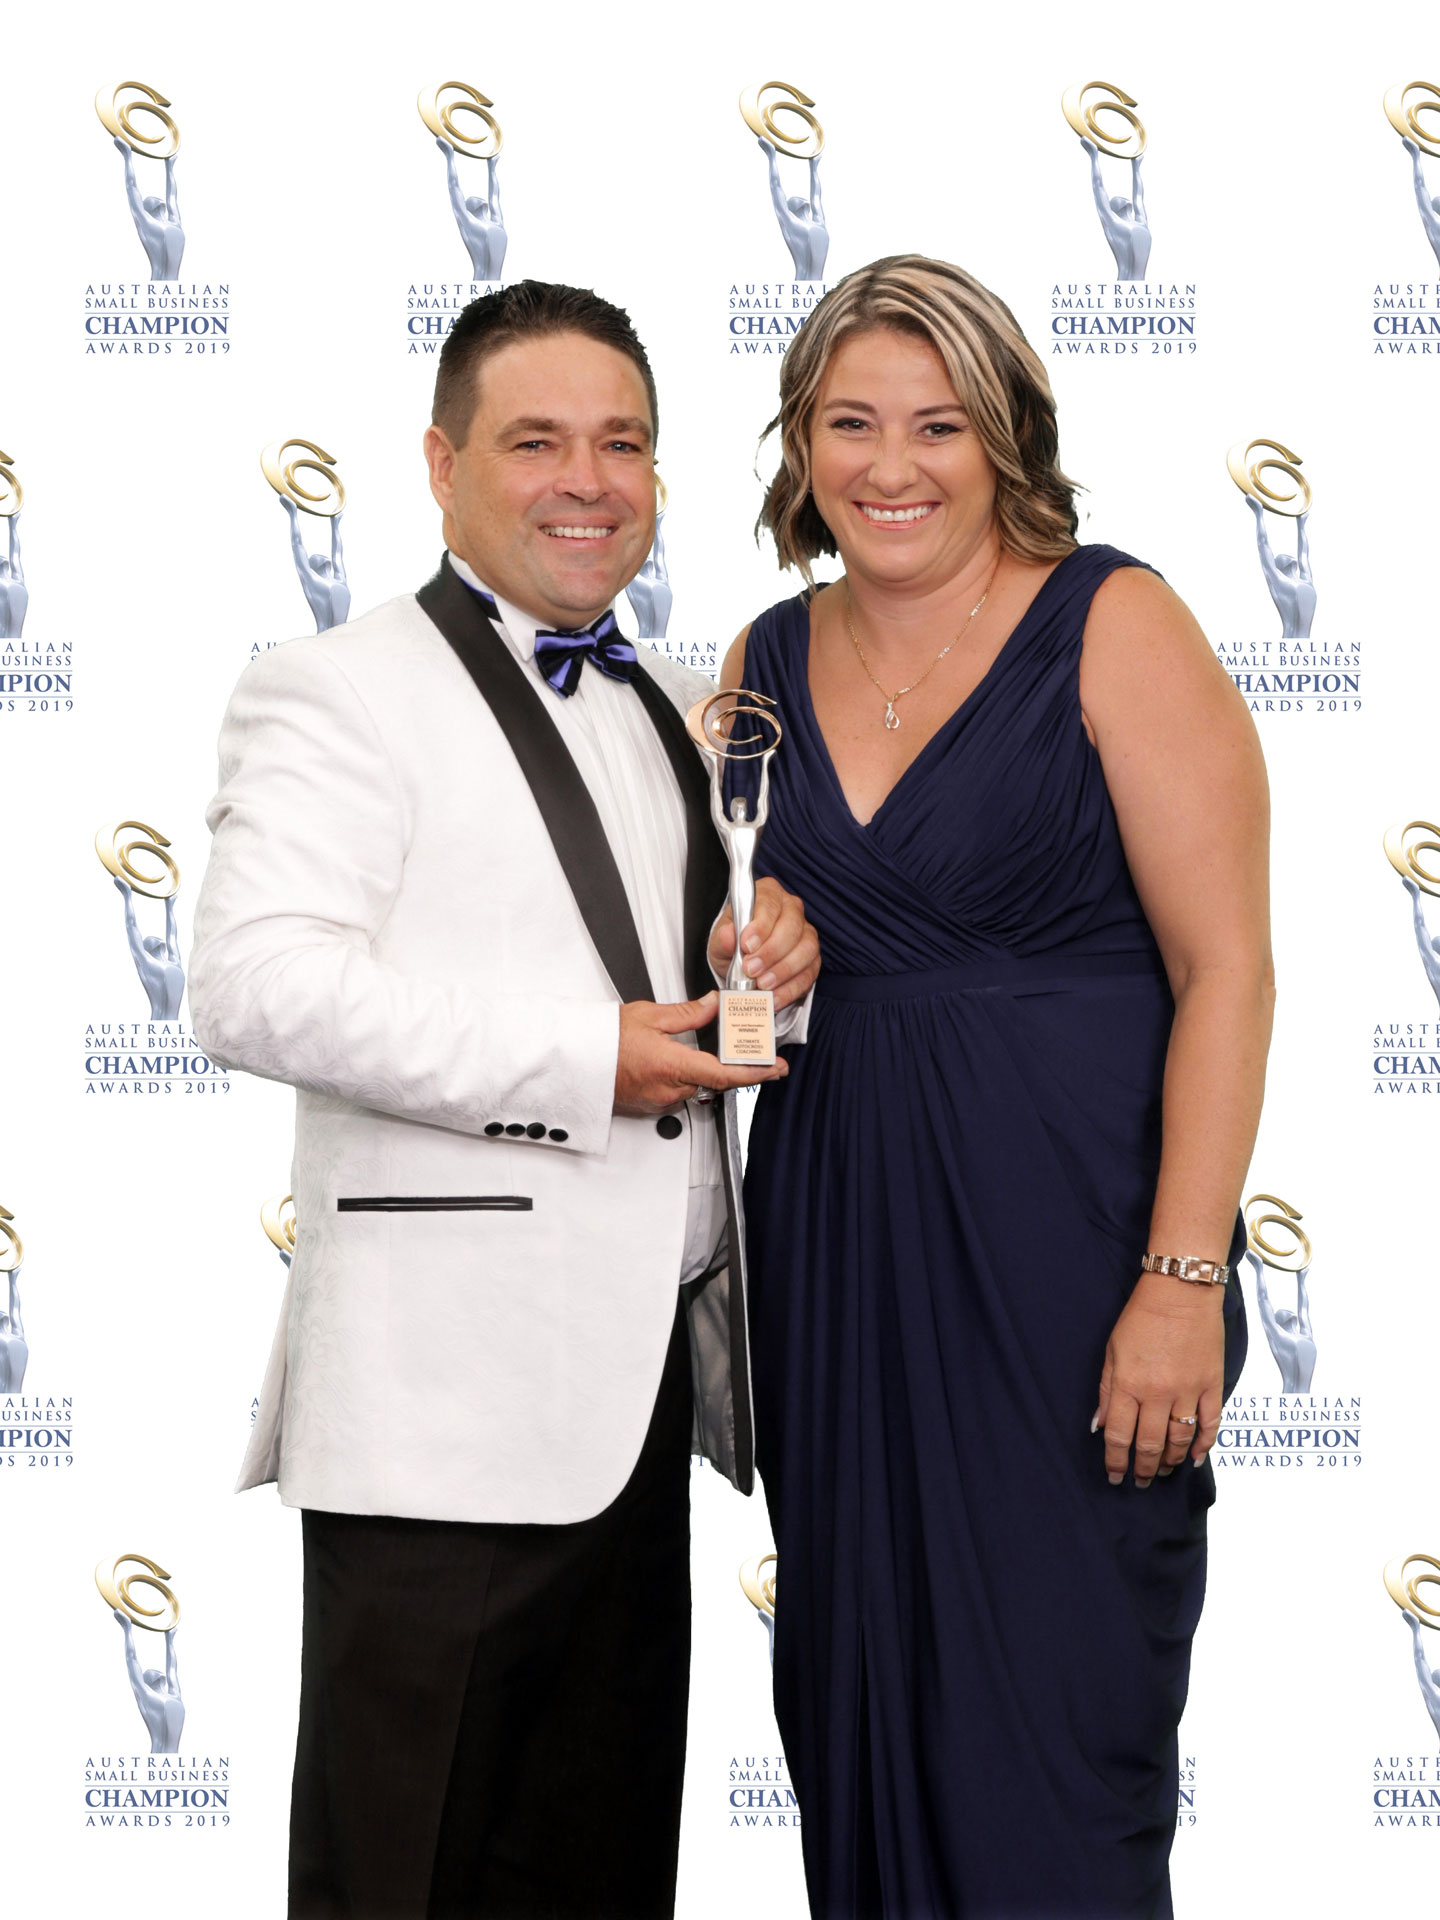 Ultimate Motocross Coaching Jodie Herson and wife awards night